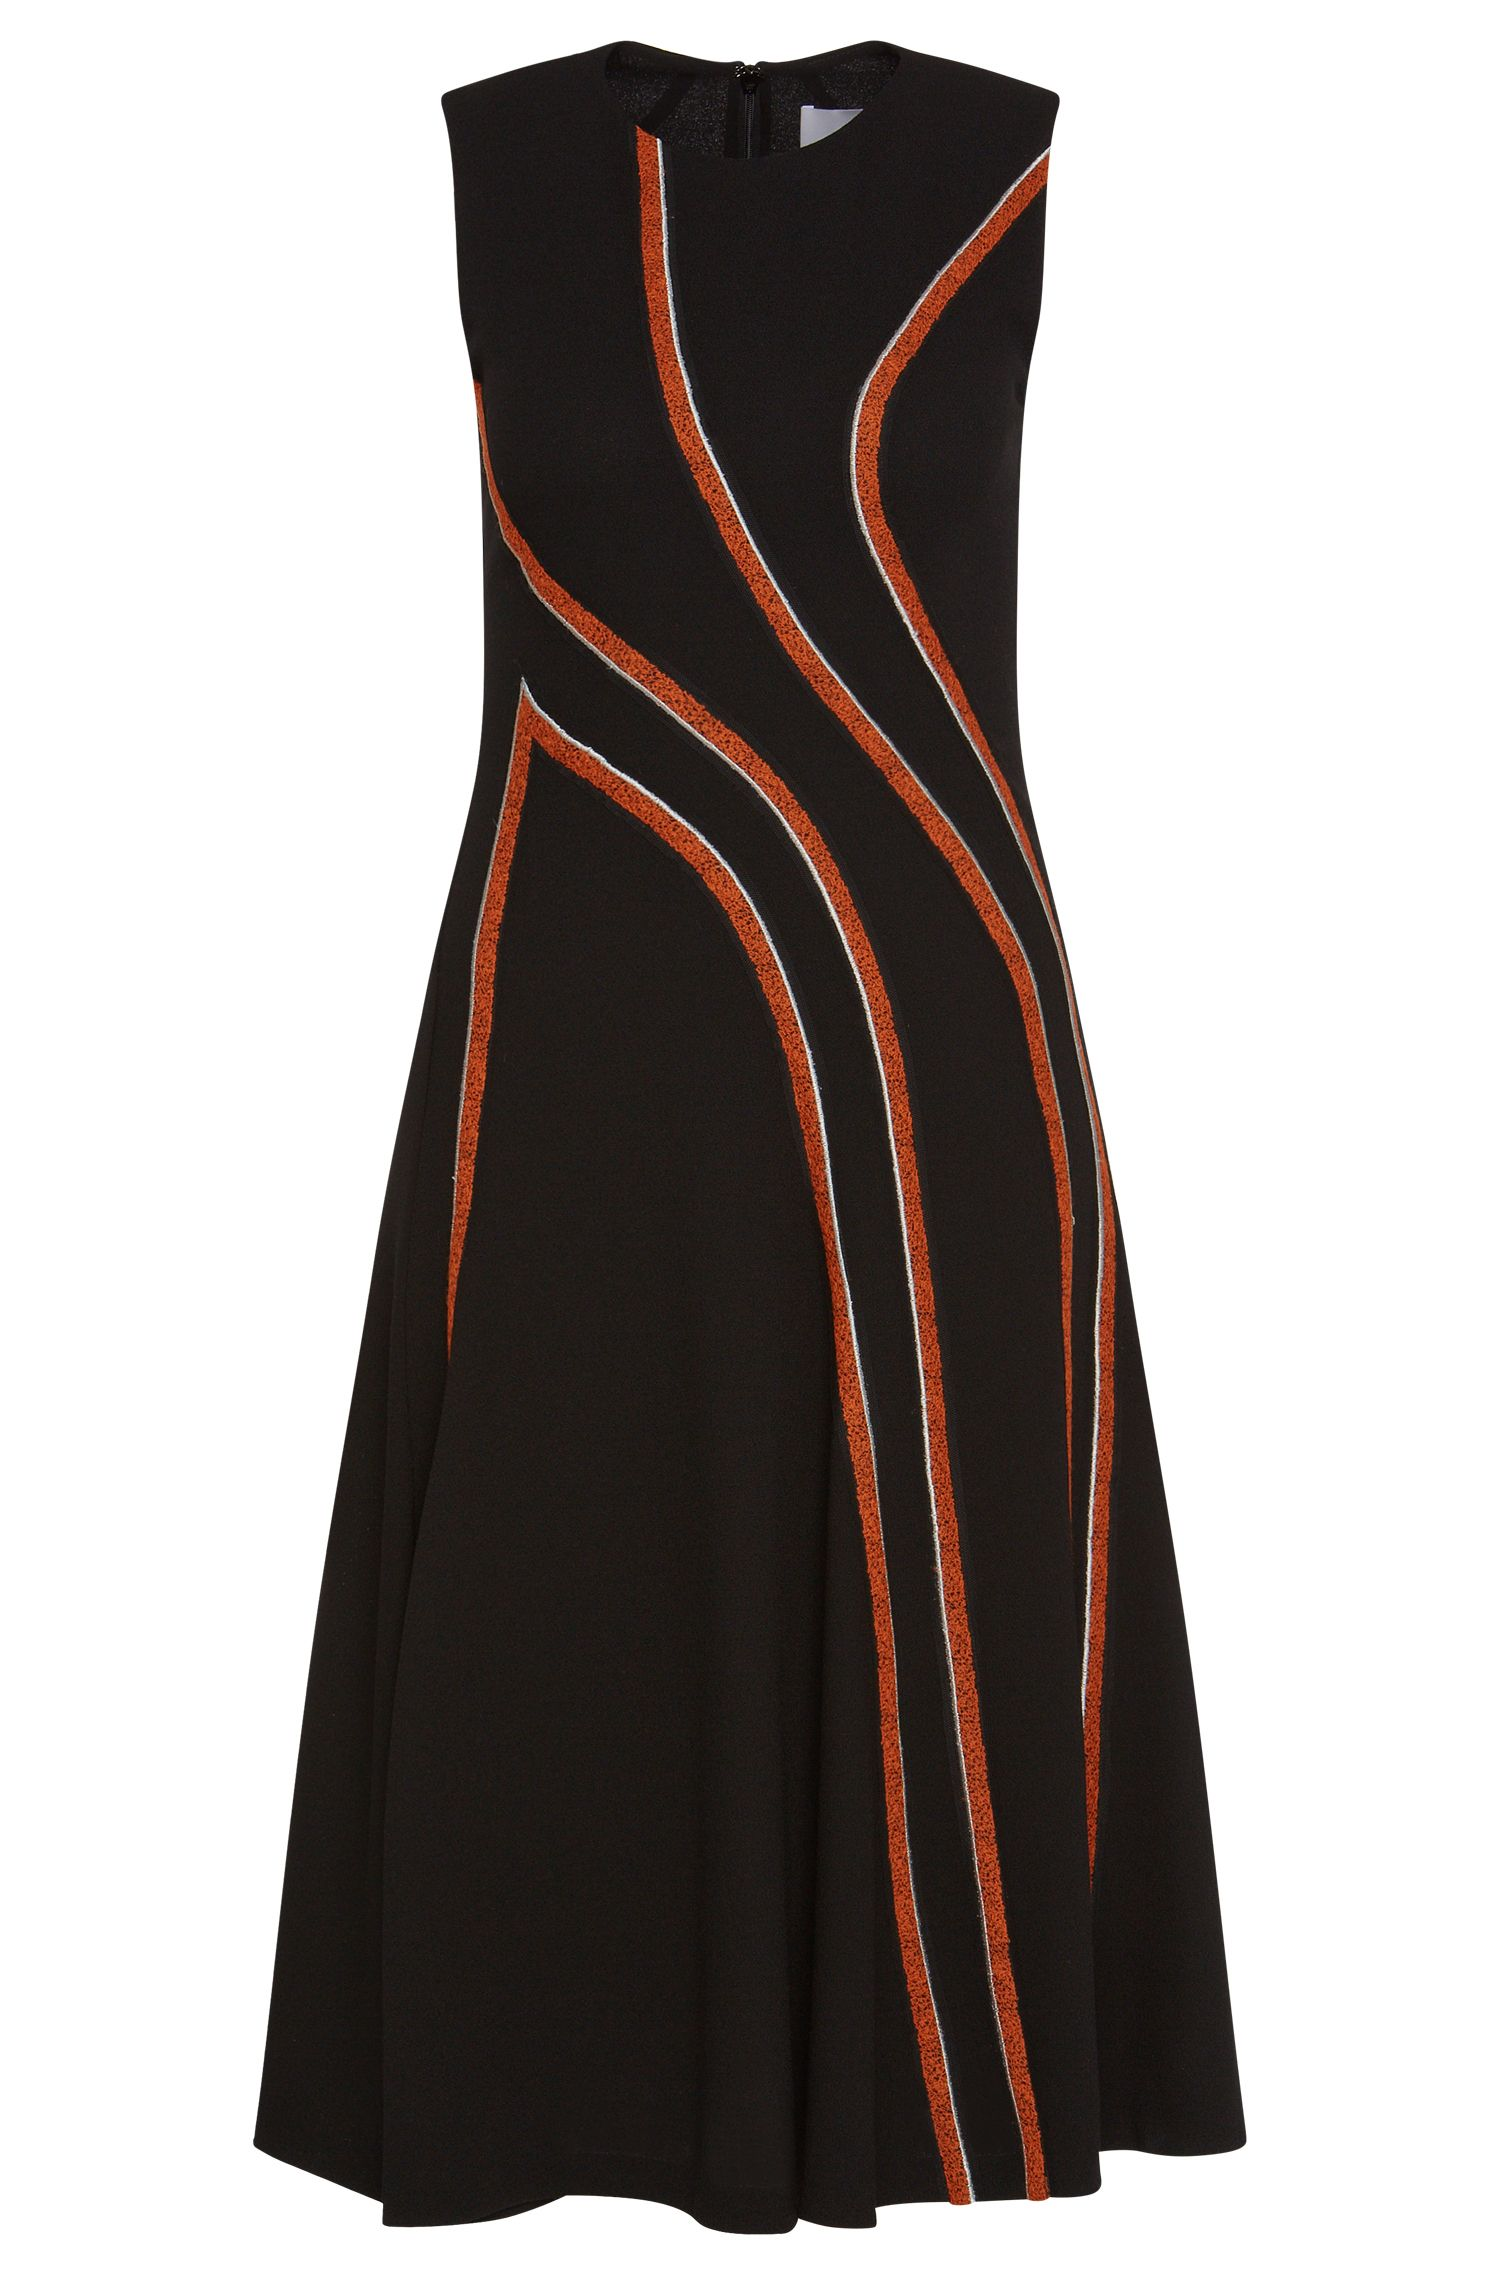 'FS_Derici' | Contrast Wool Stripe A-Line Dress